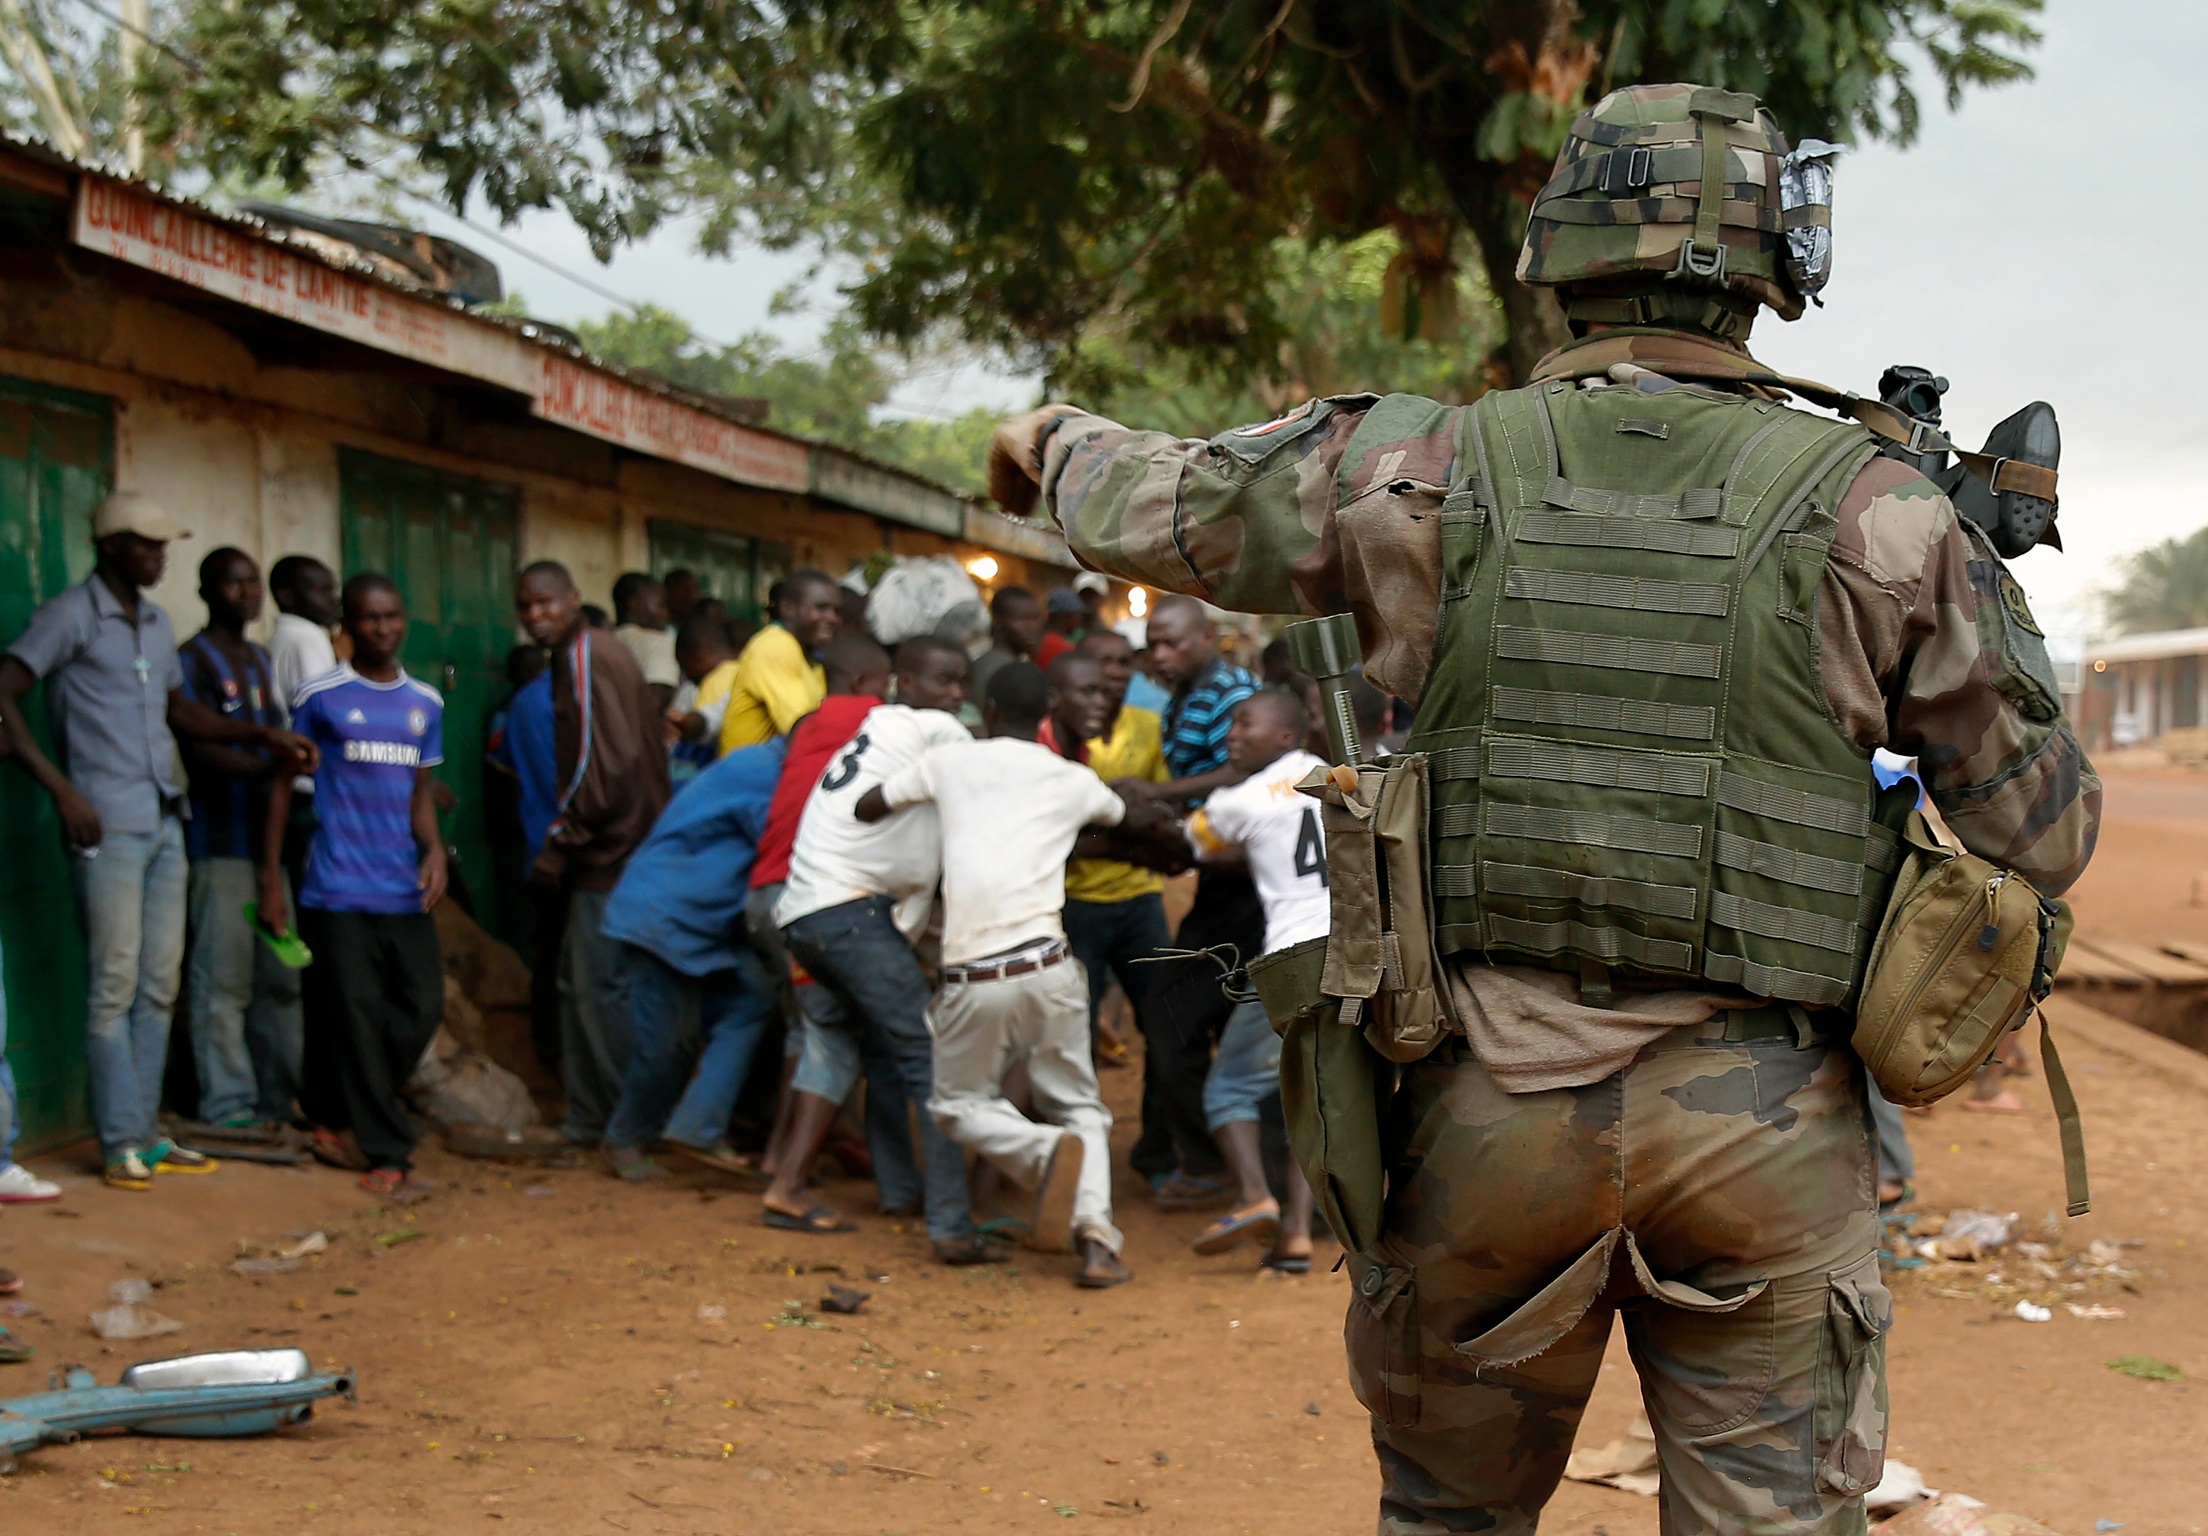 A French soldier screams at mobs of Christians attacking suspected Seleka members  before firing warning shots near the airport in  Bangui, Central African Republic, Monday  Dec. 9, 2013.  Both Christian and Muslim mobs went on lynching sprees as French Forces deploy in the capital. (AP Photo/Jerome Delay)